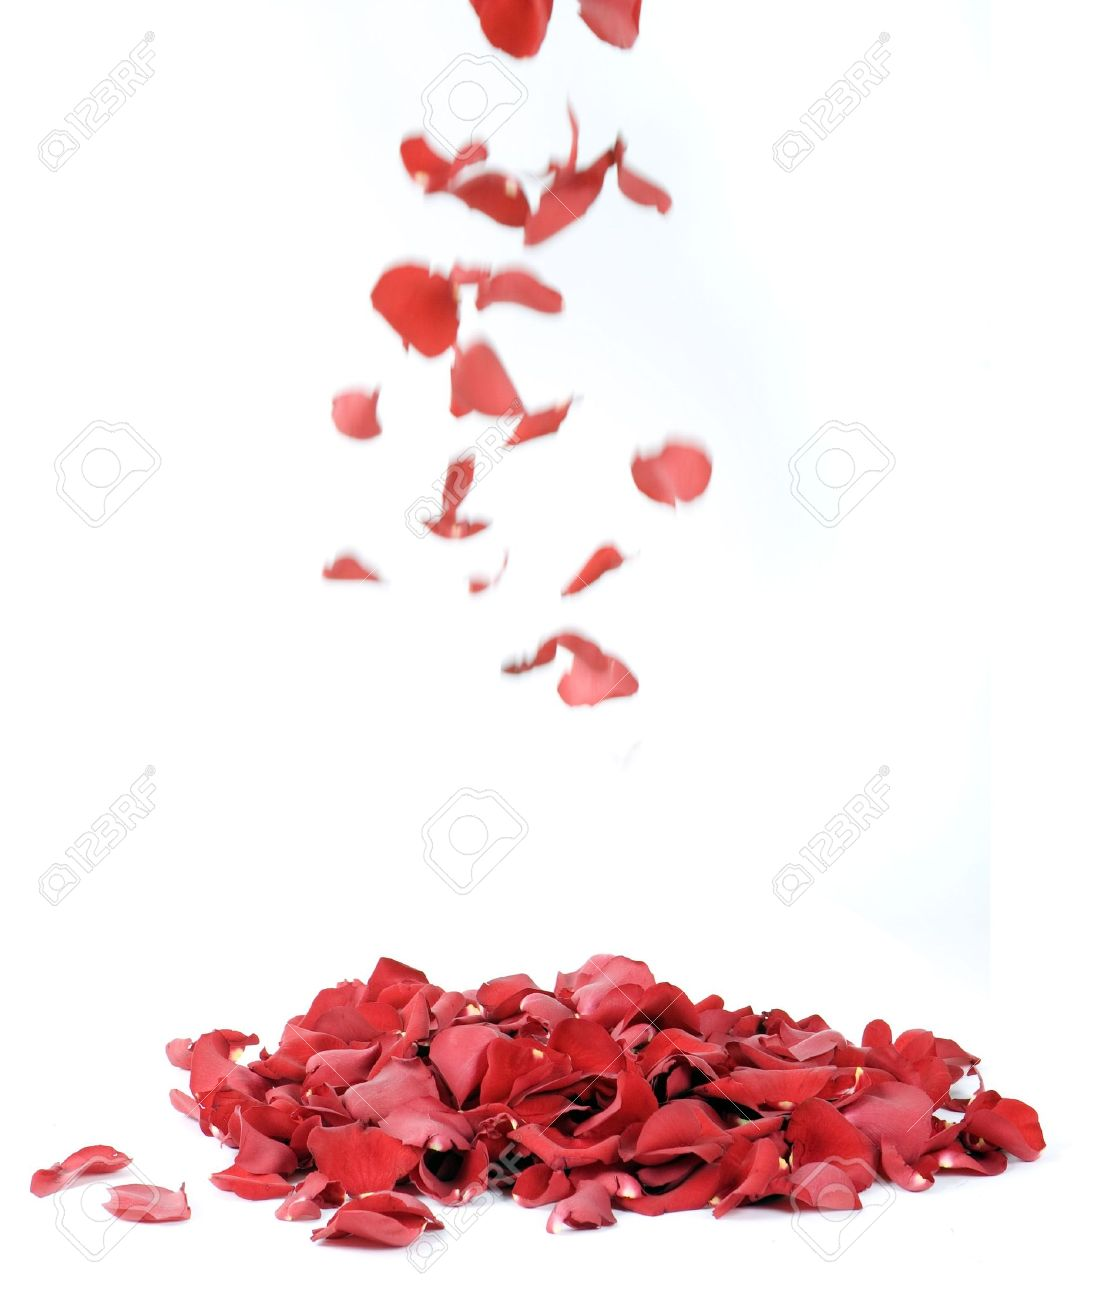 Rose petals on a white background - 4923934